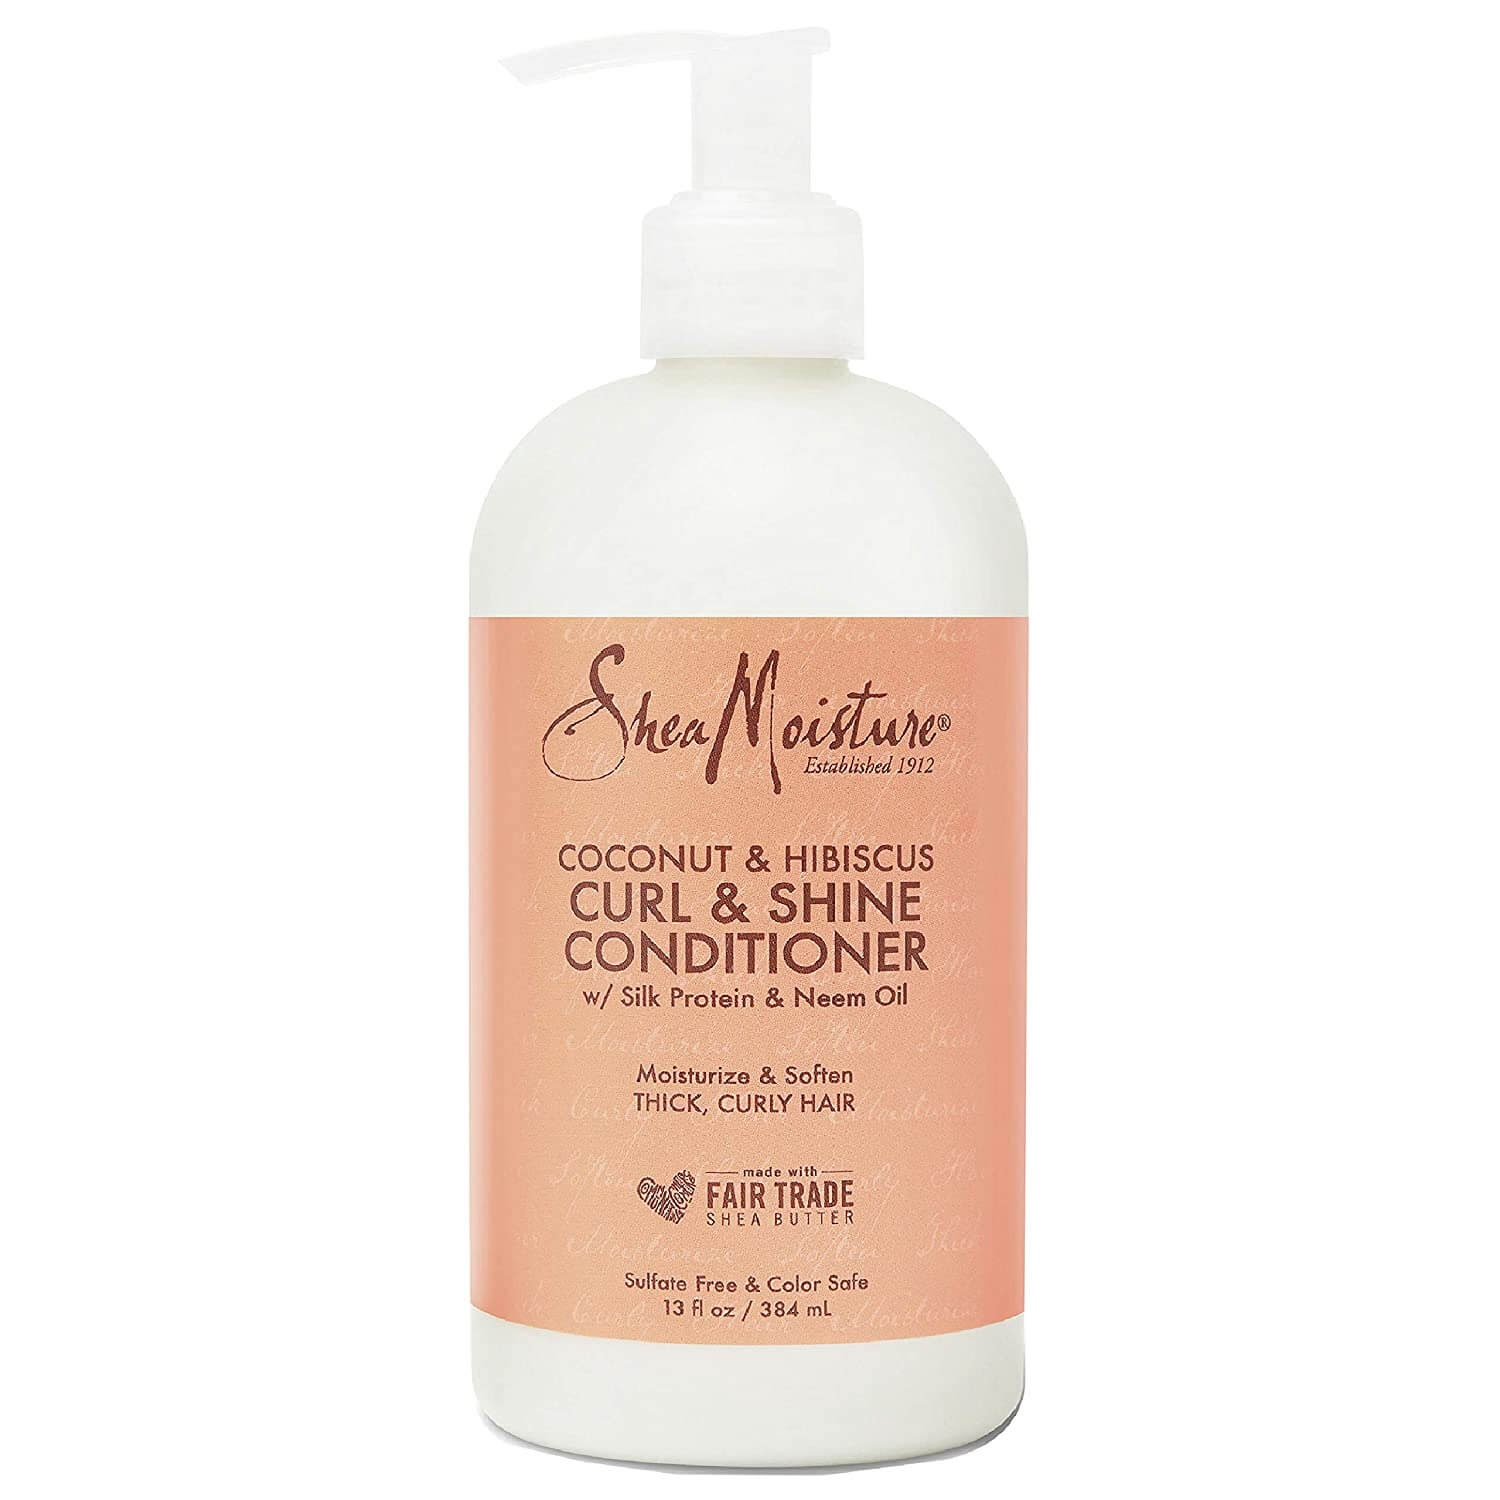 Shea Moisture Coconut and Hibiscus curl and shine conditioner